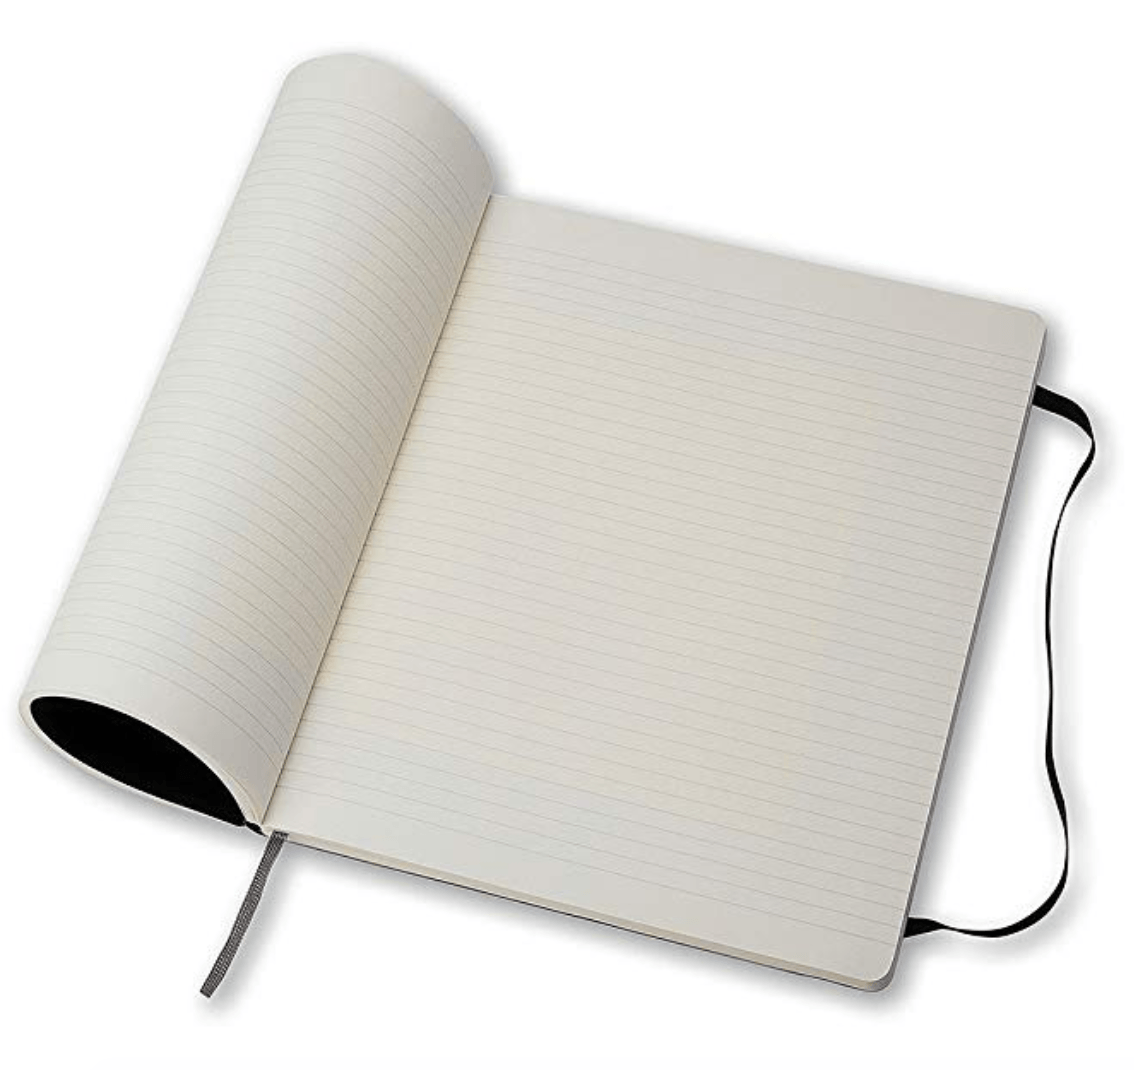 Moleskin Classic gifts for travelers